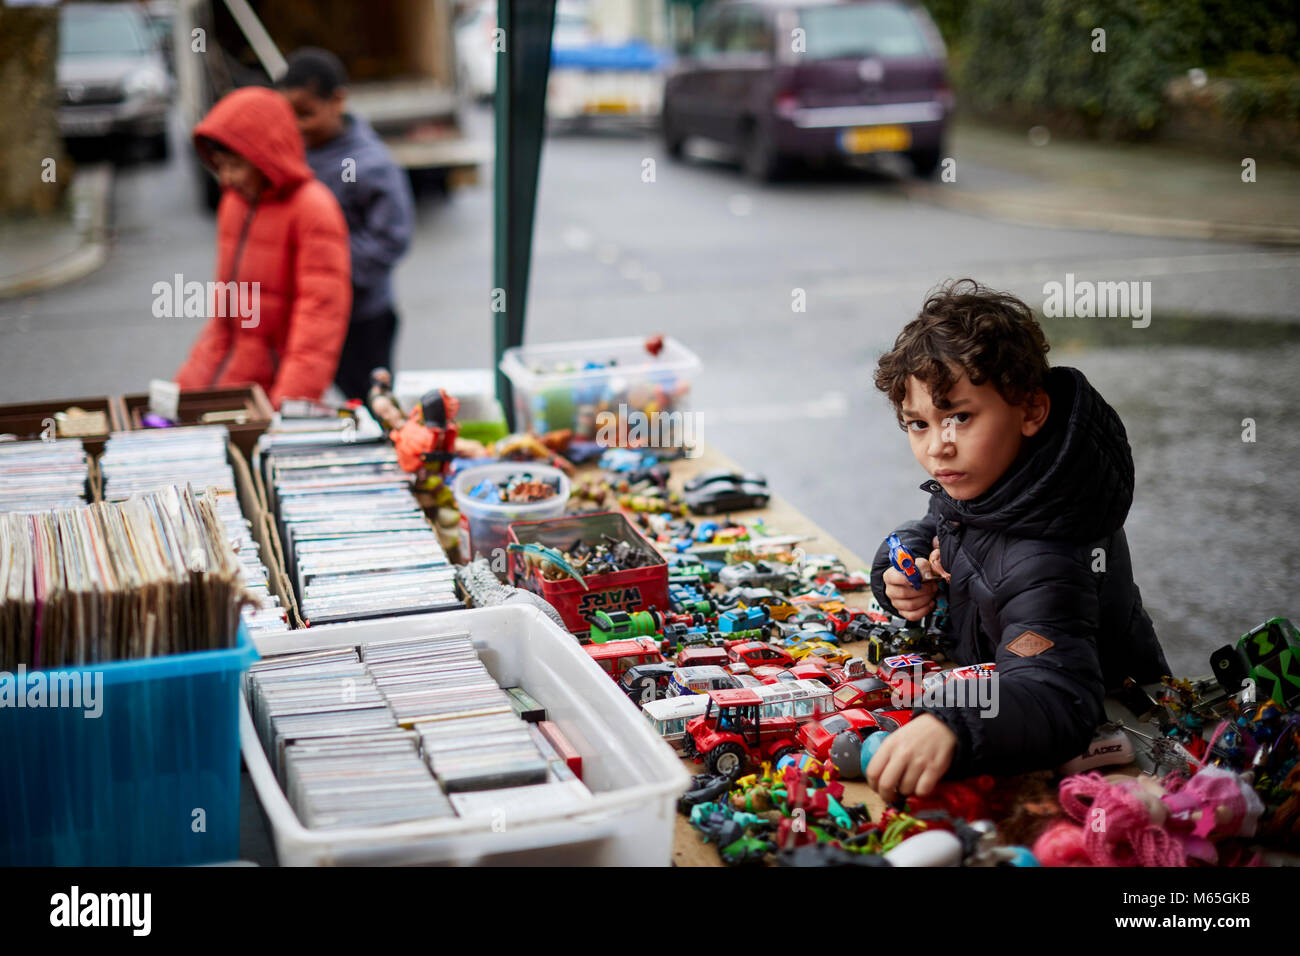 Liverpool's Granby Street market a  Turner Prize winning regeneration area. Locals browsing the second hand - Stock Image